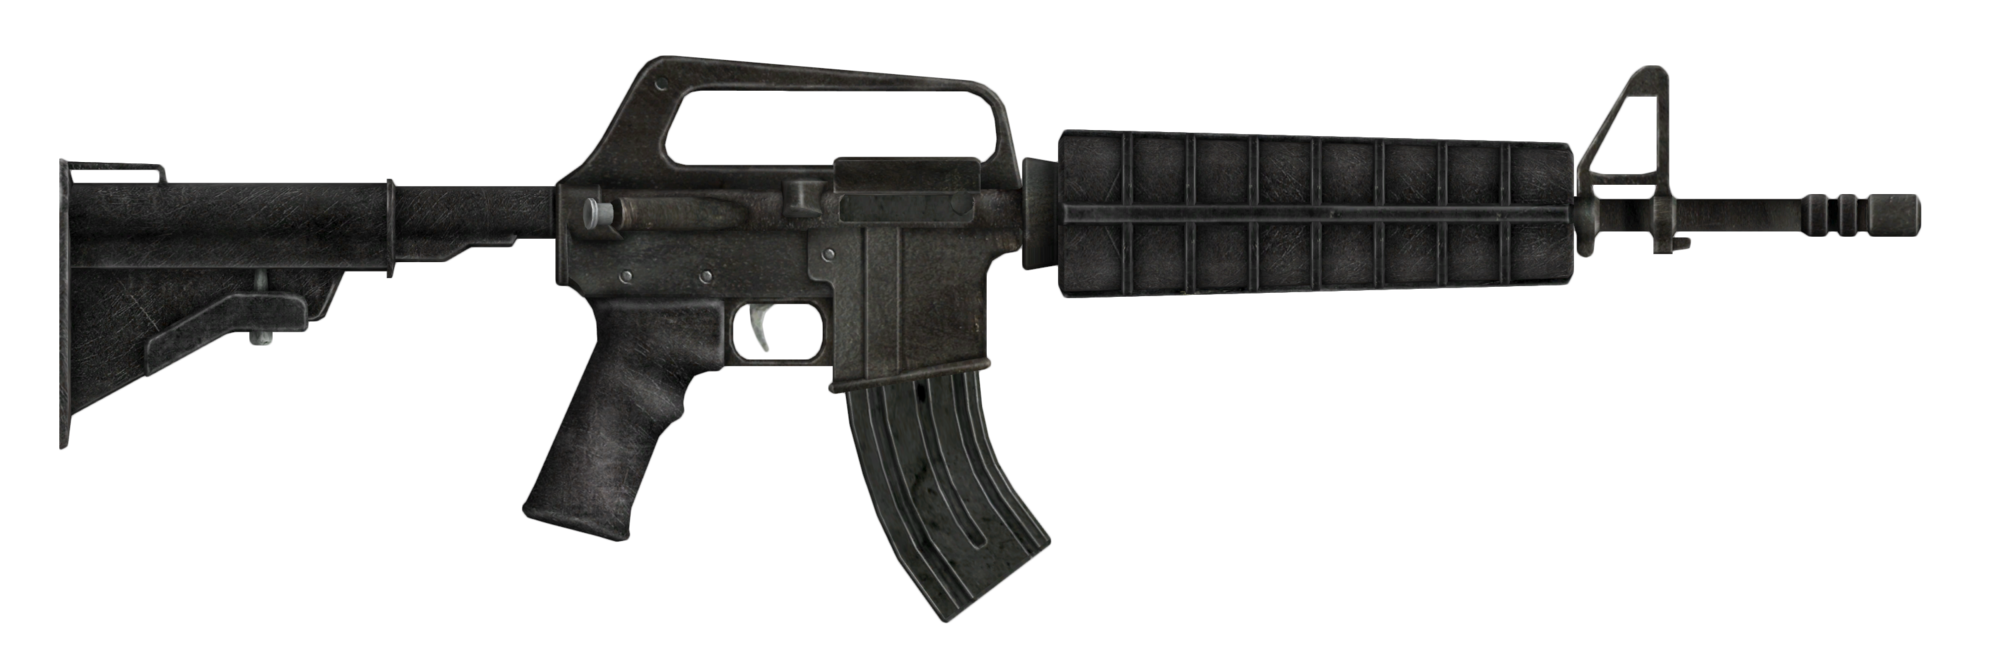 Carbine clip metal. Assault extended magazines fallout